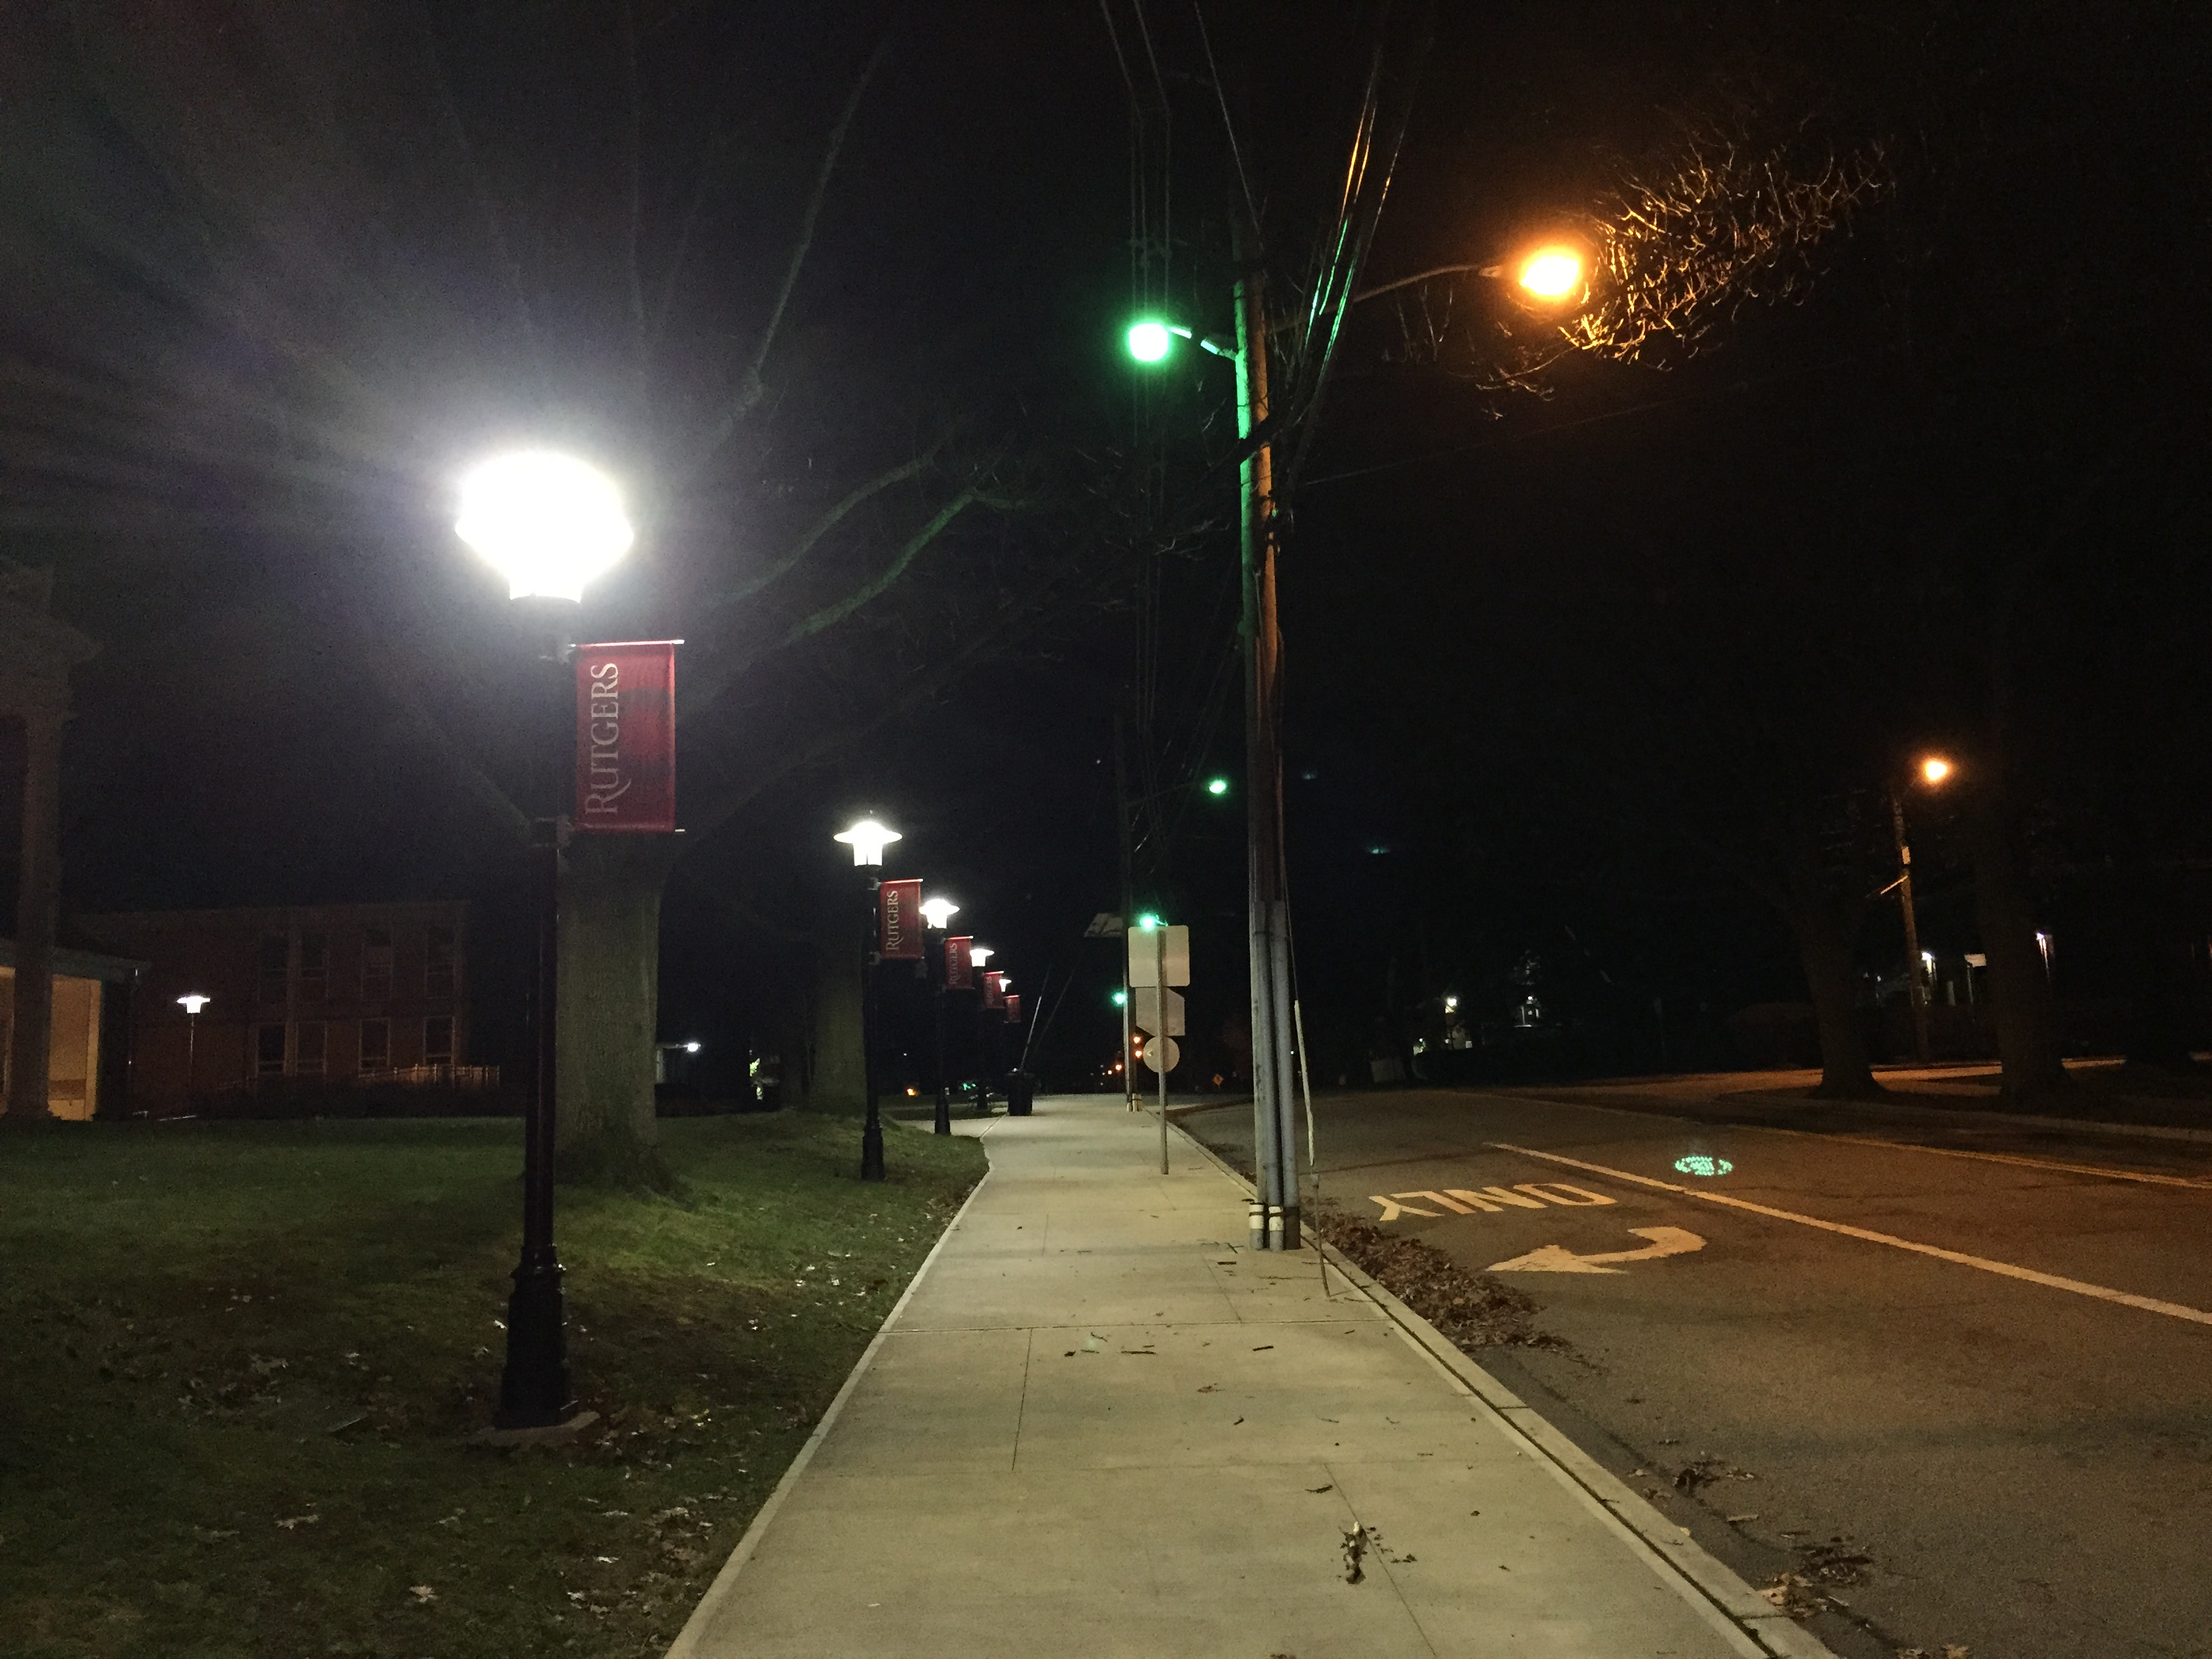 File:2016-01-17 03 01 01 Sidewalk and street lights at ...